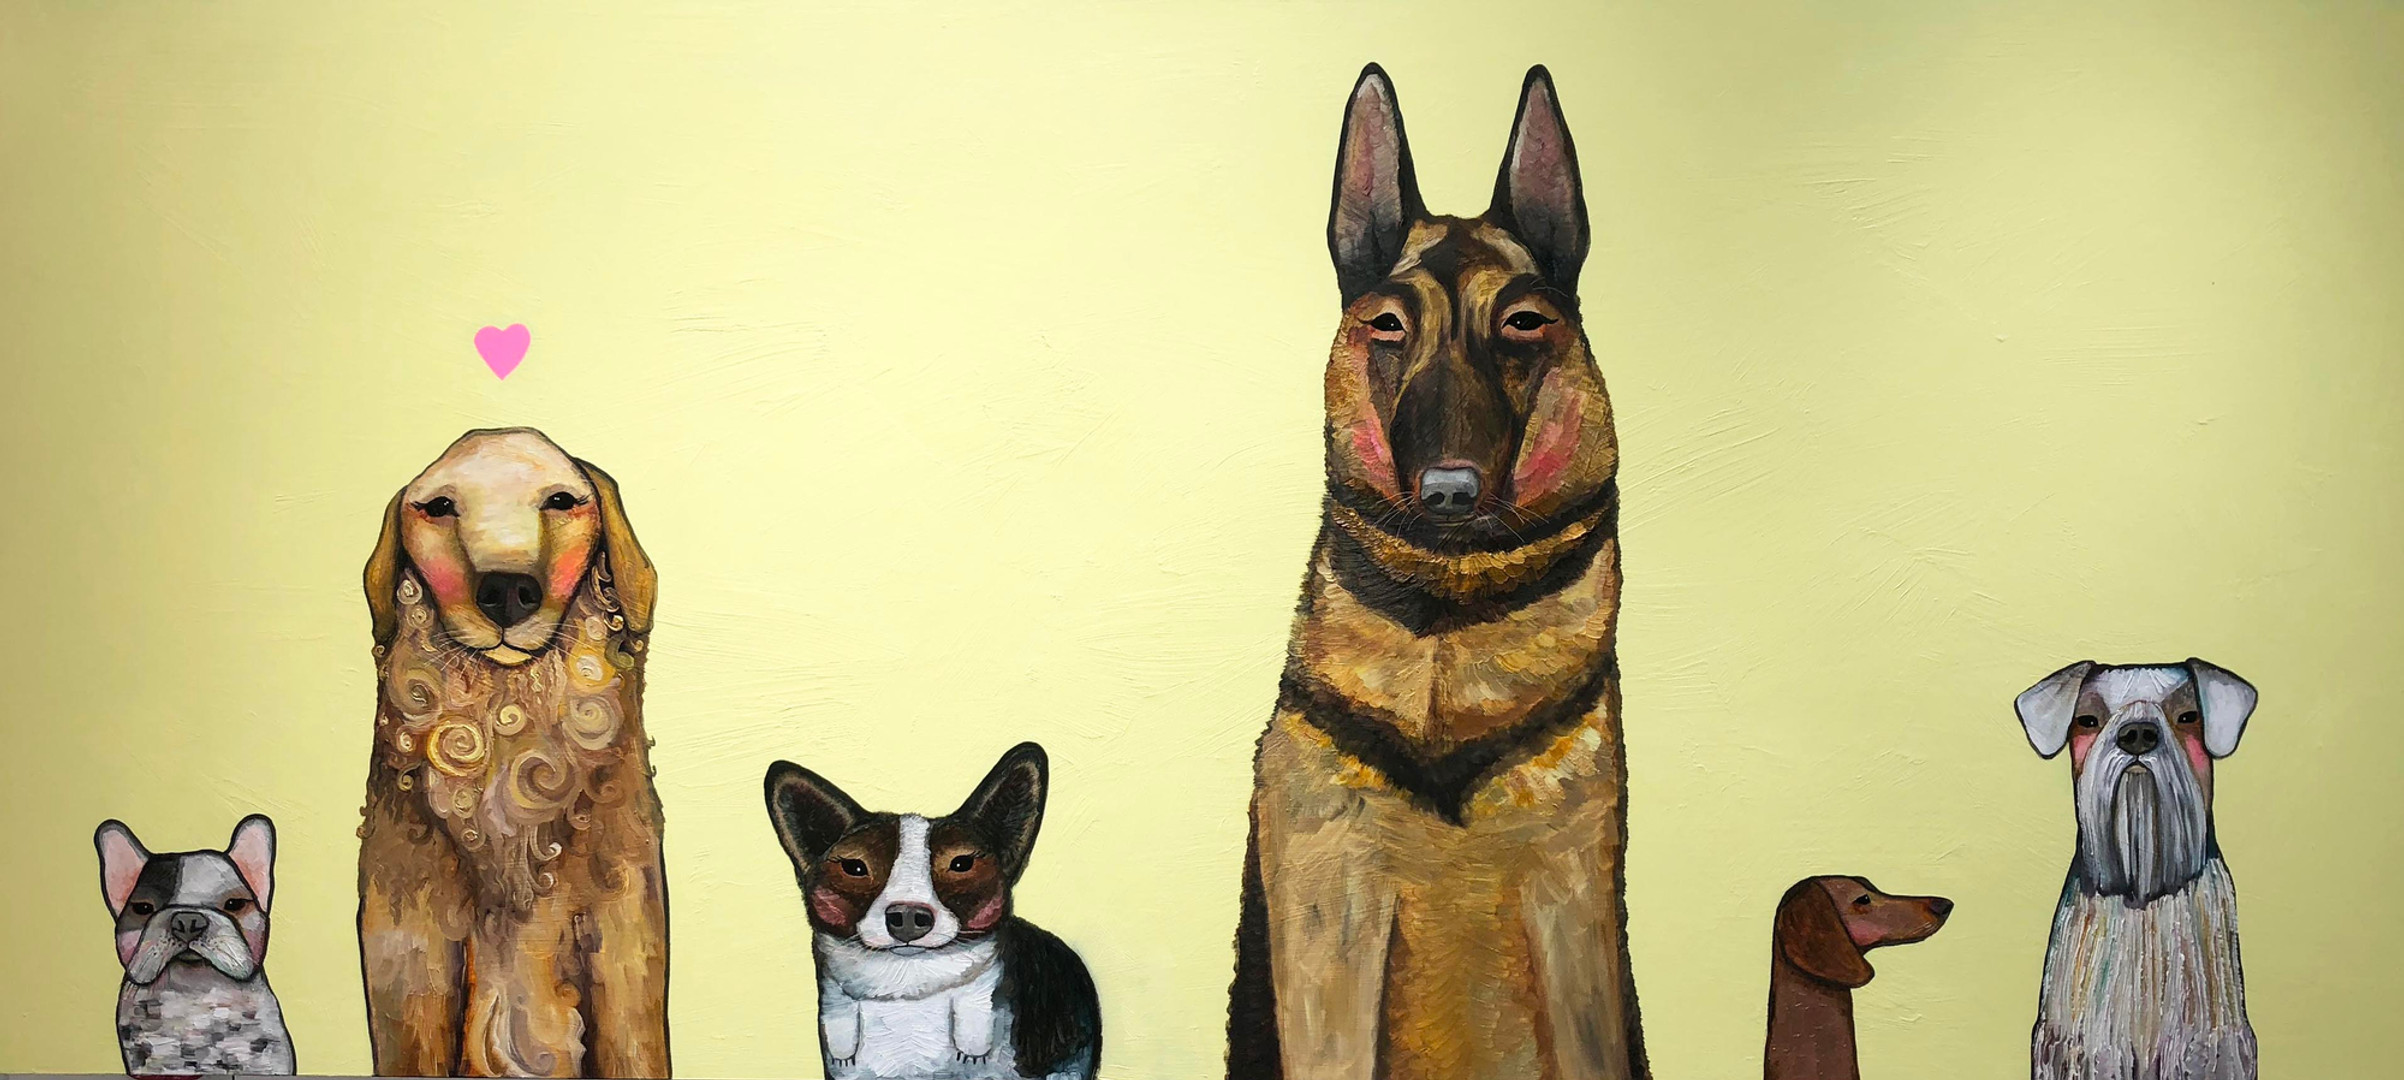 "Dogs  36"" x 80"" $4400 Oil and acrylic on wood. This is an original oil painting. The sides are painted gloss black and there is a wire on the back so it is ready to hang with no framing needed. Contact eli@elihalpin.com for purchasing. Payment plans accepted."